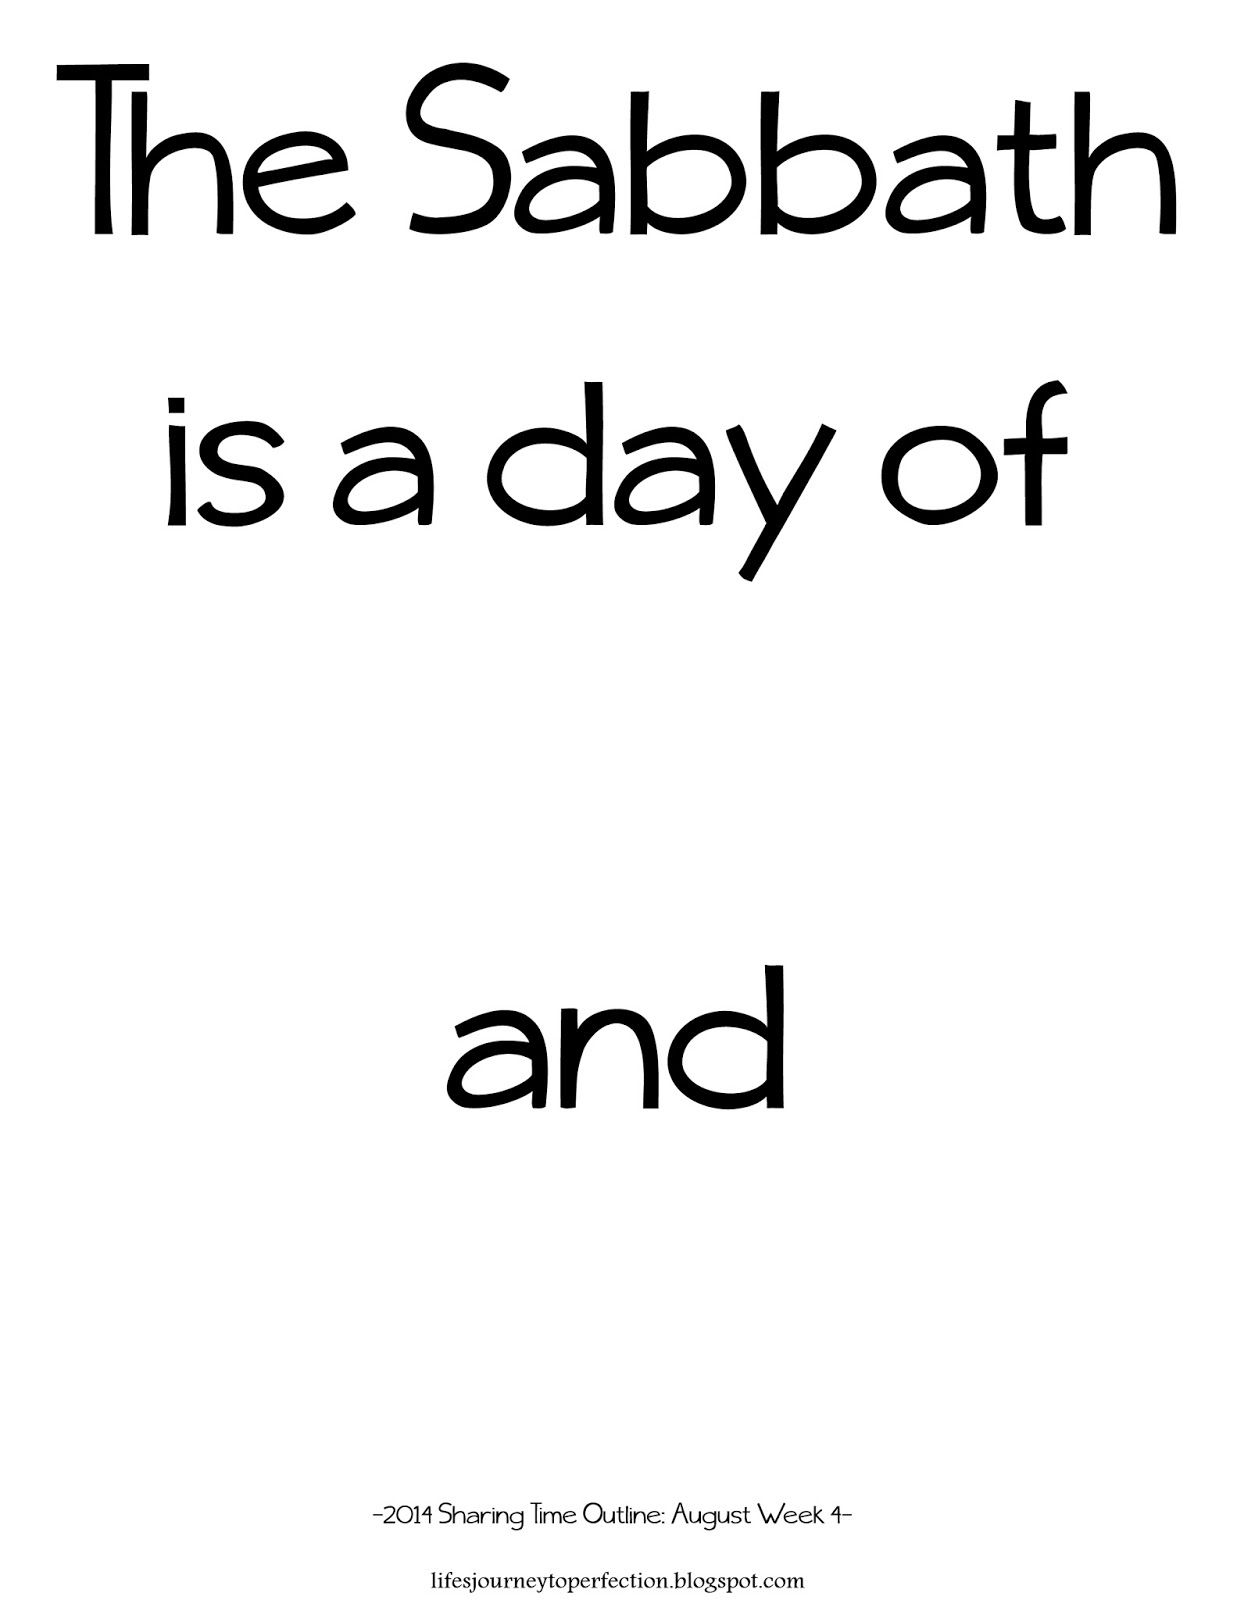 LDS Sharing Time August 2014 Week 4: The Sabbath is a day